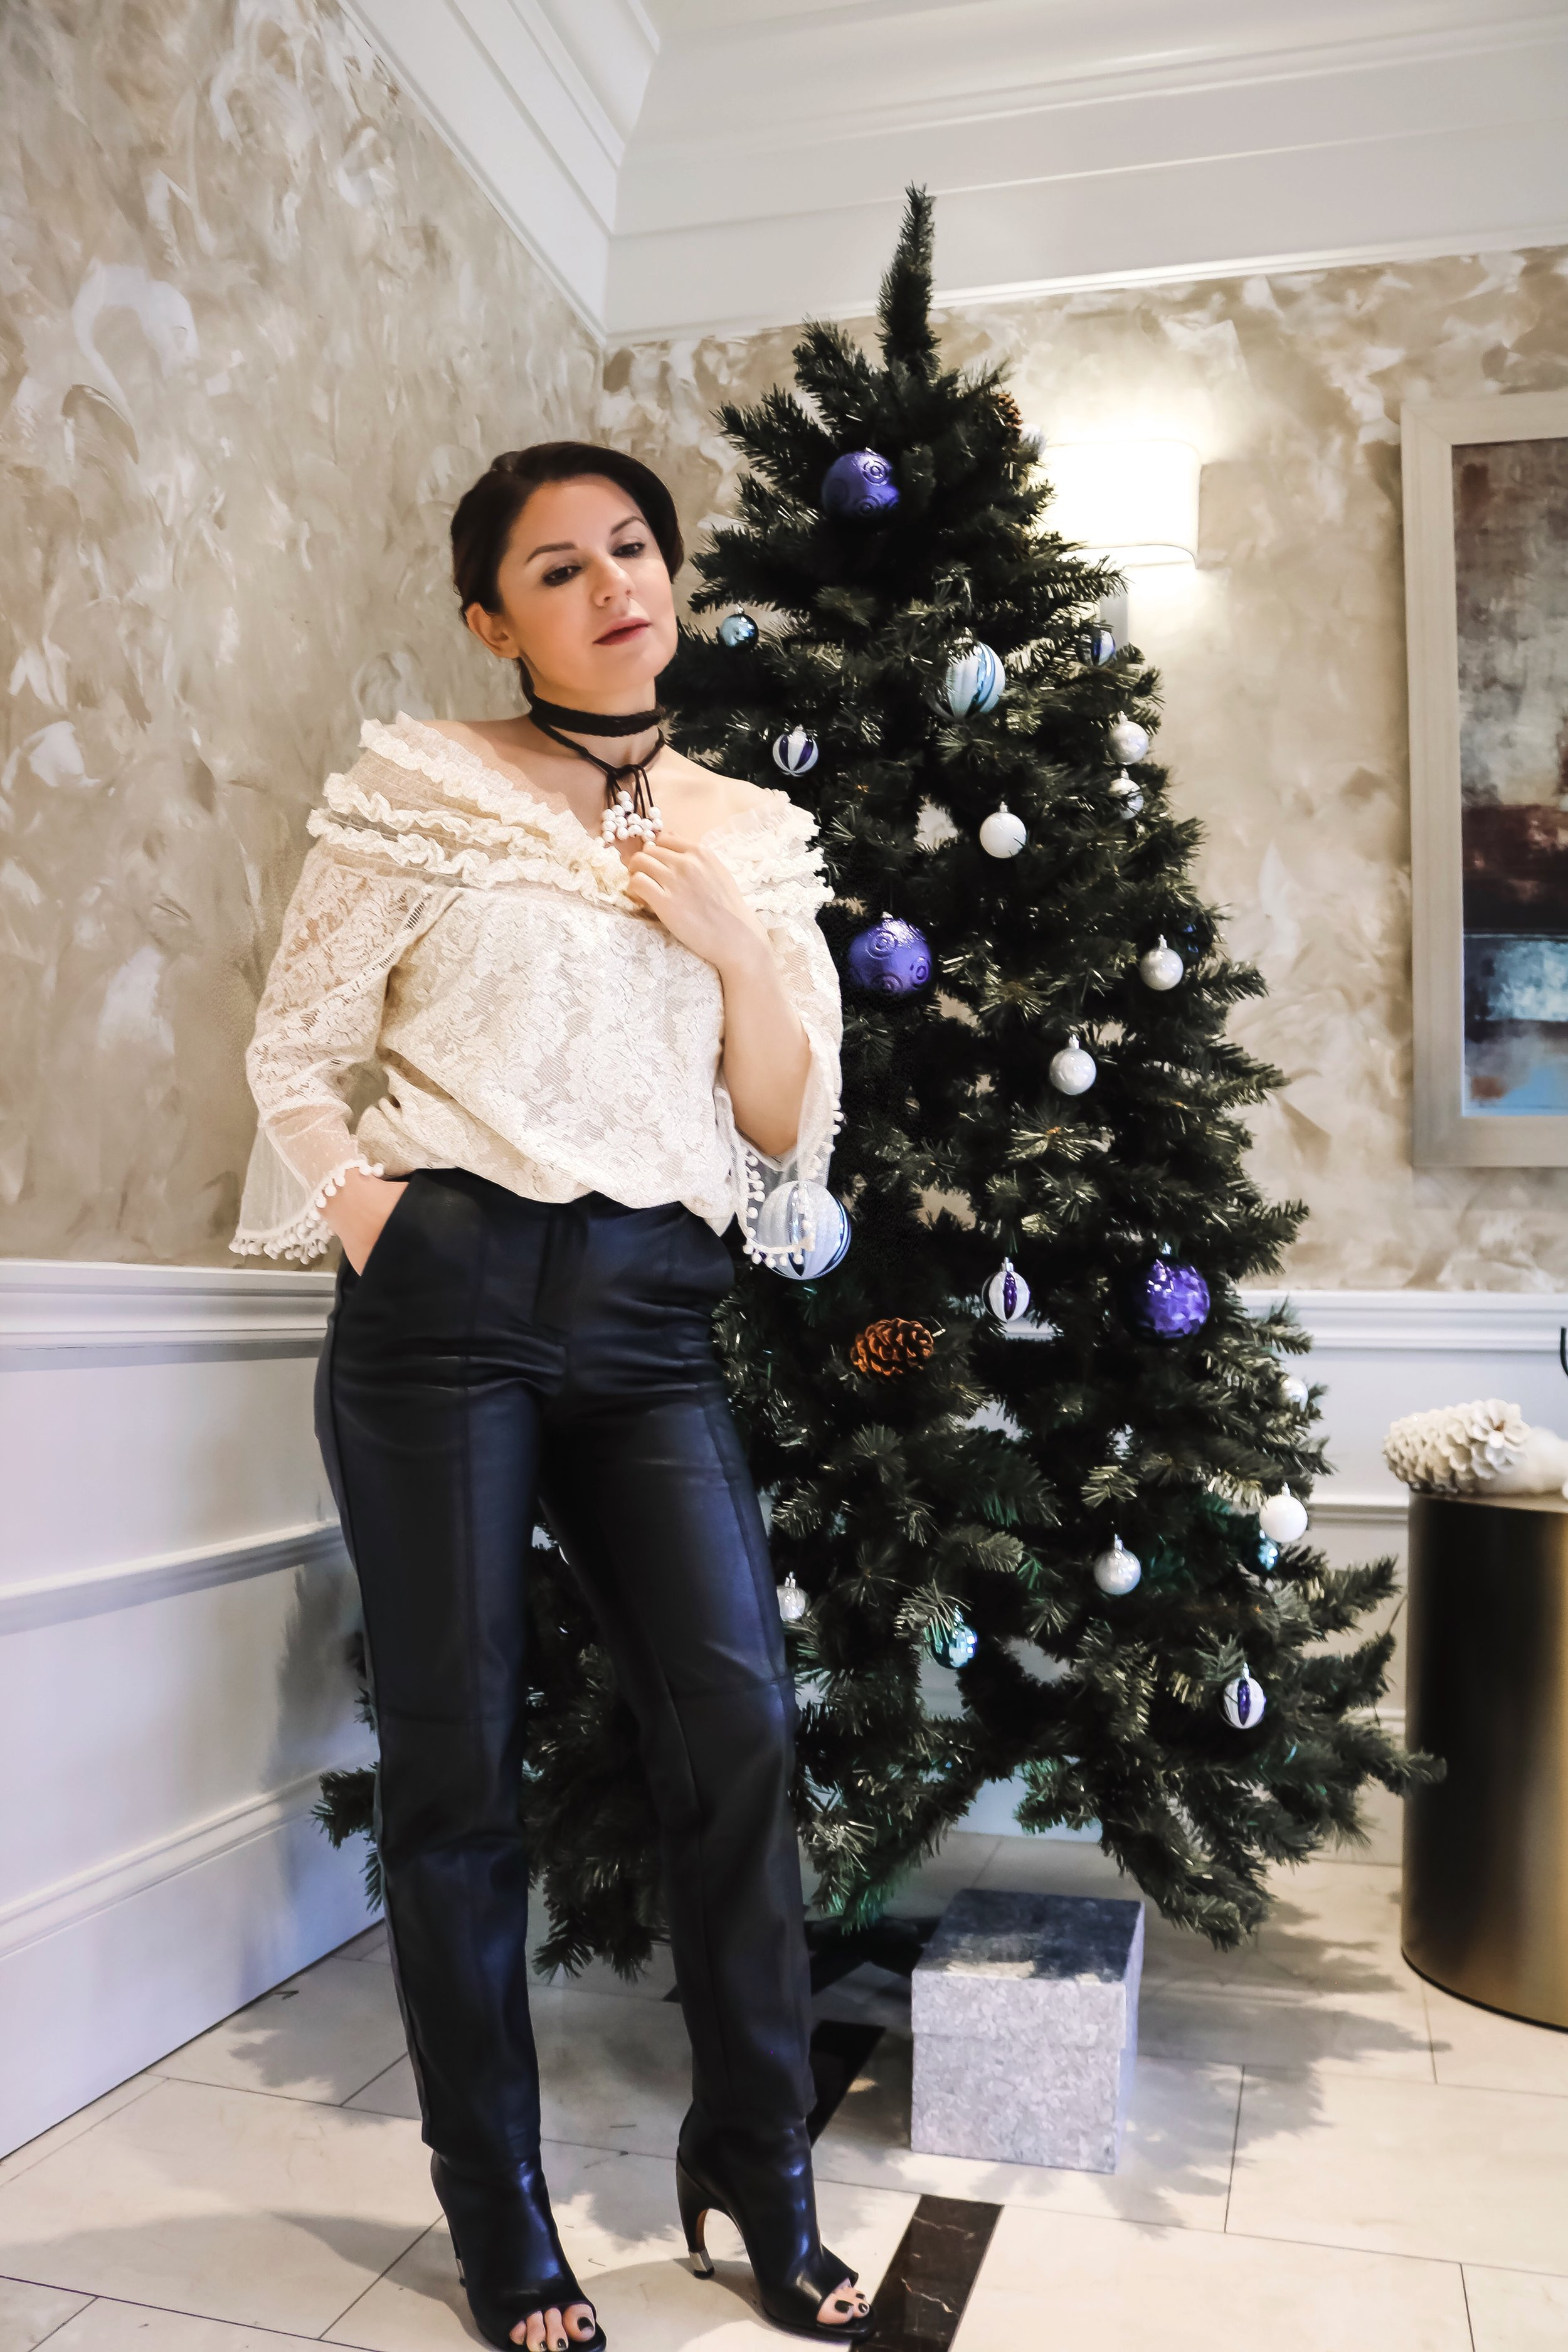 isabel-alexander-holiday-style-lace-leather